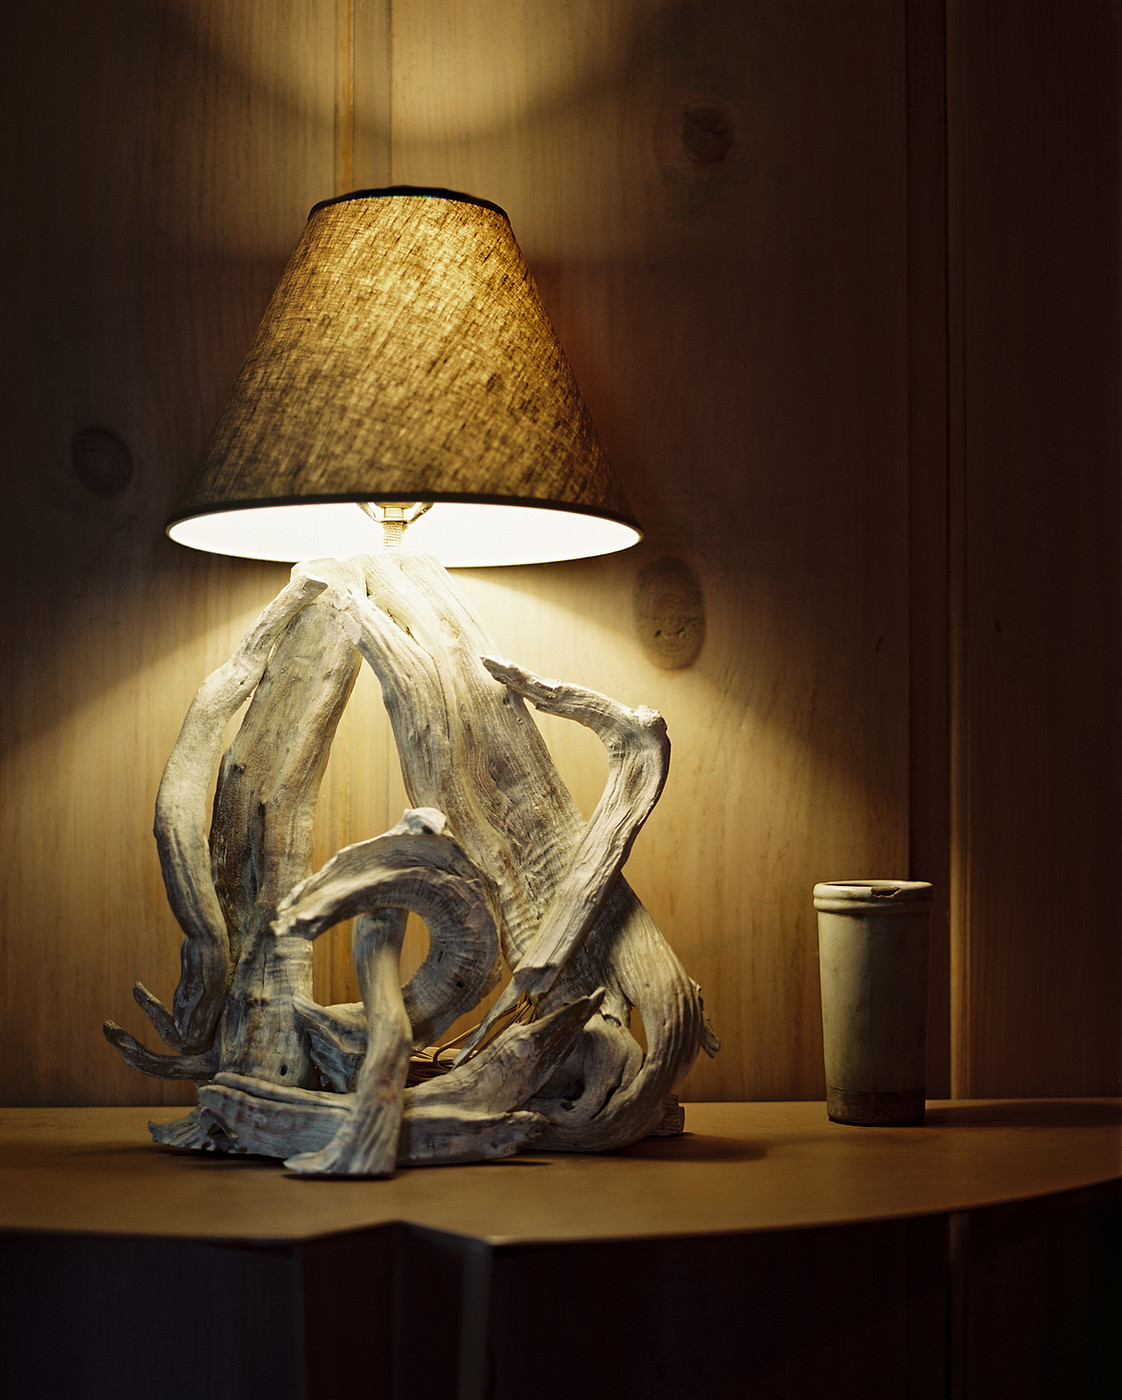 Aged Wood Lamp Photos, Design, Ideas, Remodel, And Decor